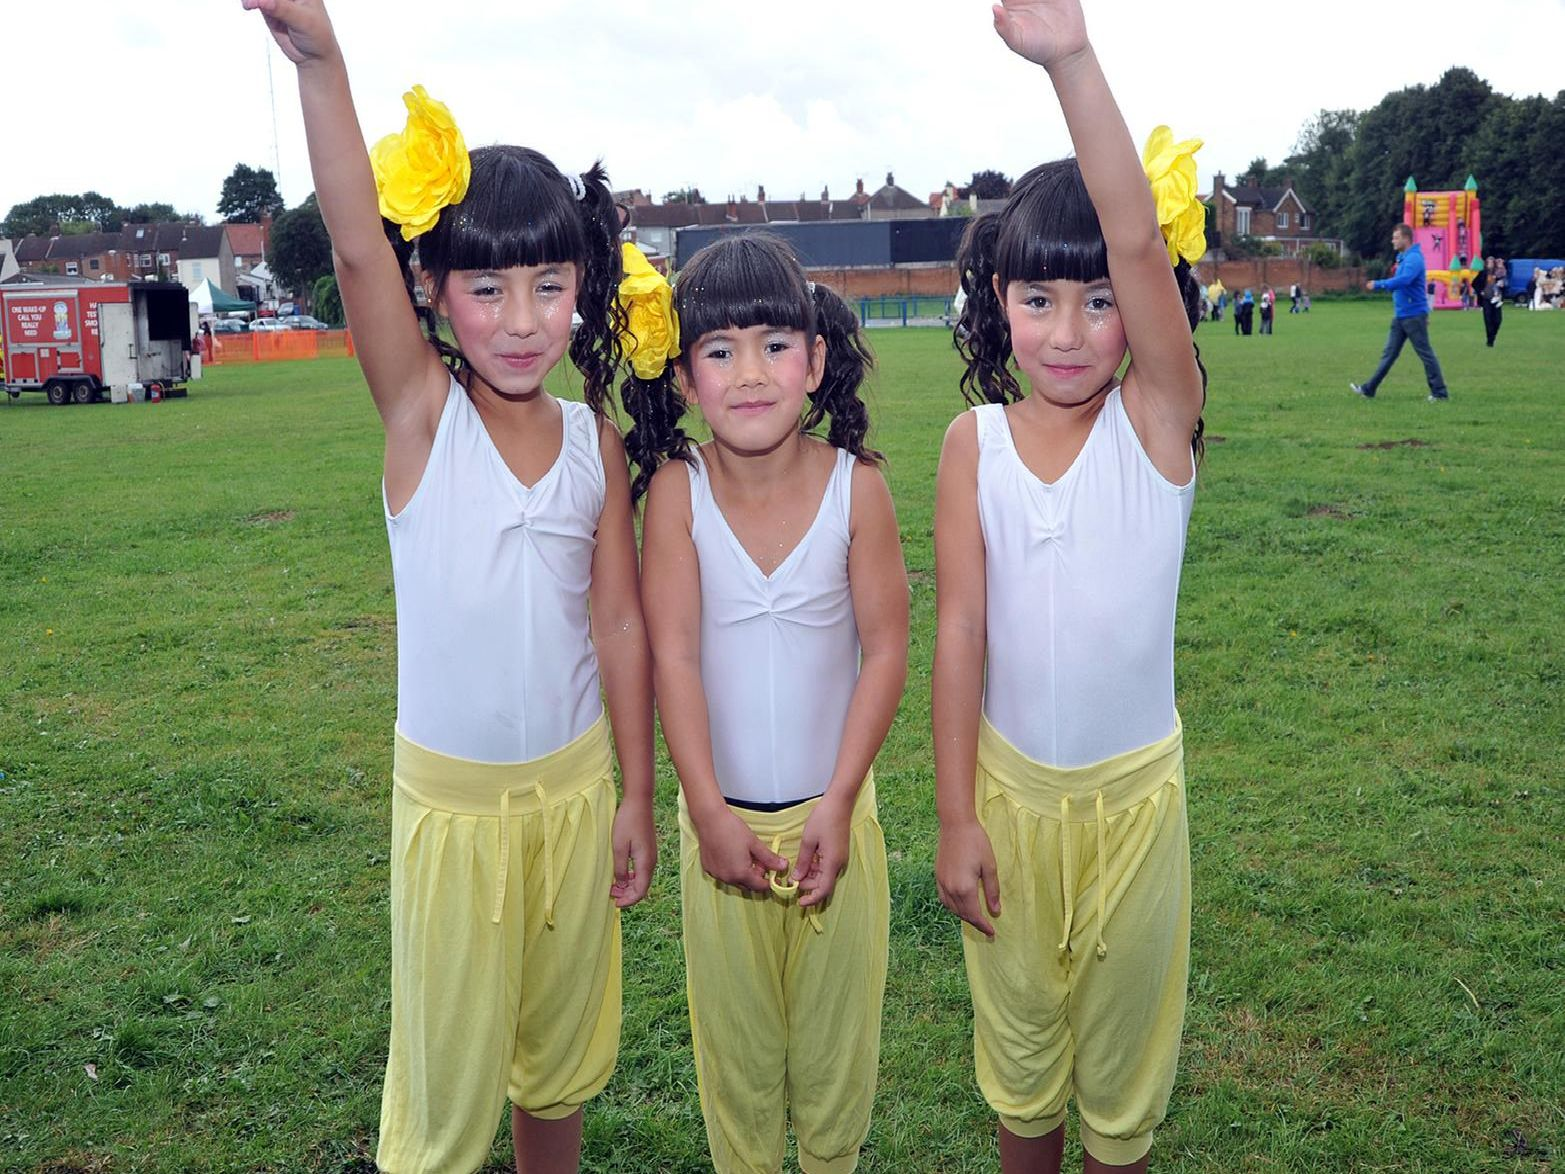 2010: These three girls are getting ready for their performance at the Help for Heroes fun day. Did you perform at this event held at Farr Park in Worksop?